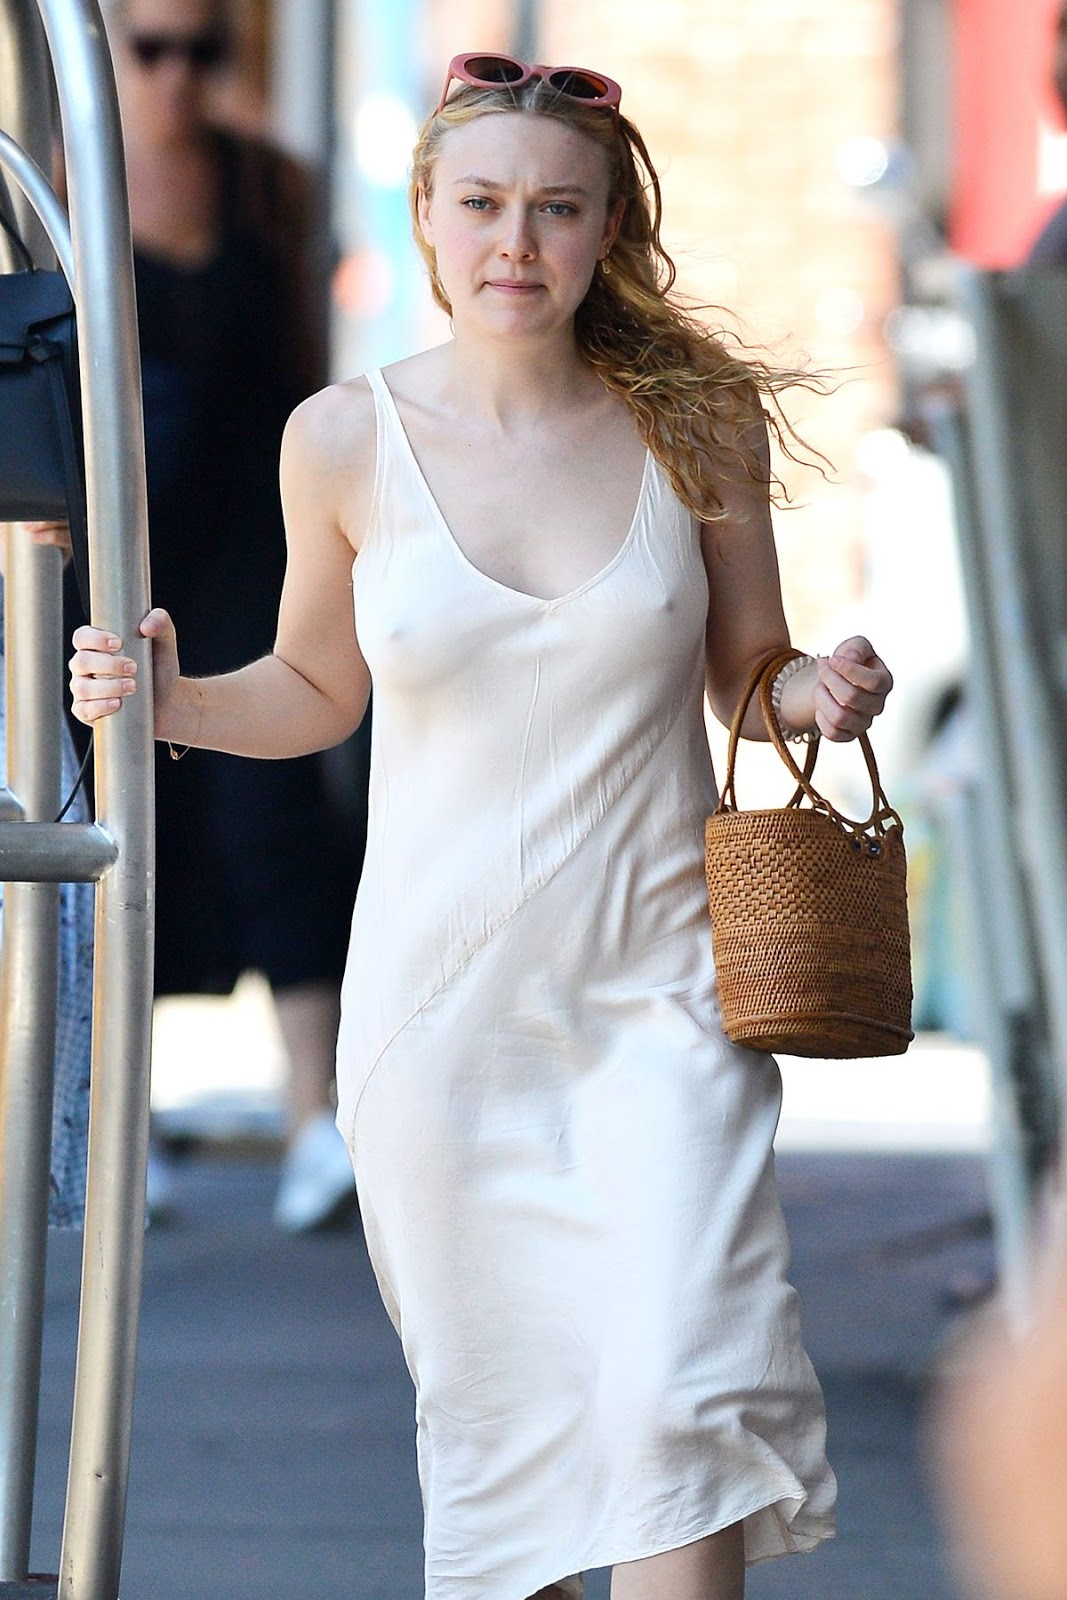 Dakota Fanning goes braless in nude slip in New York City